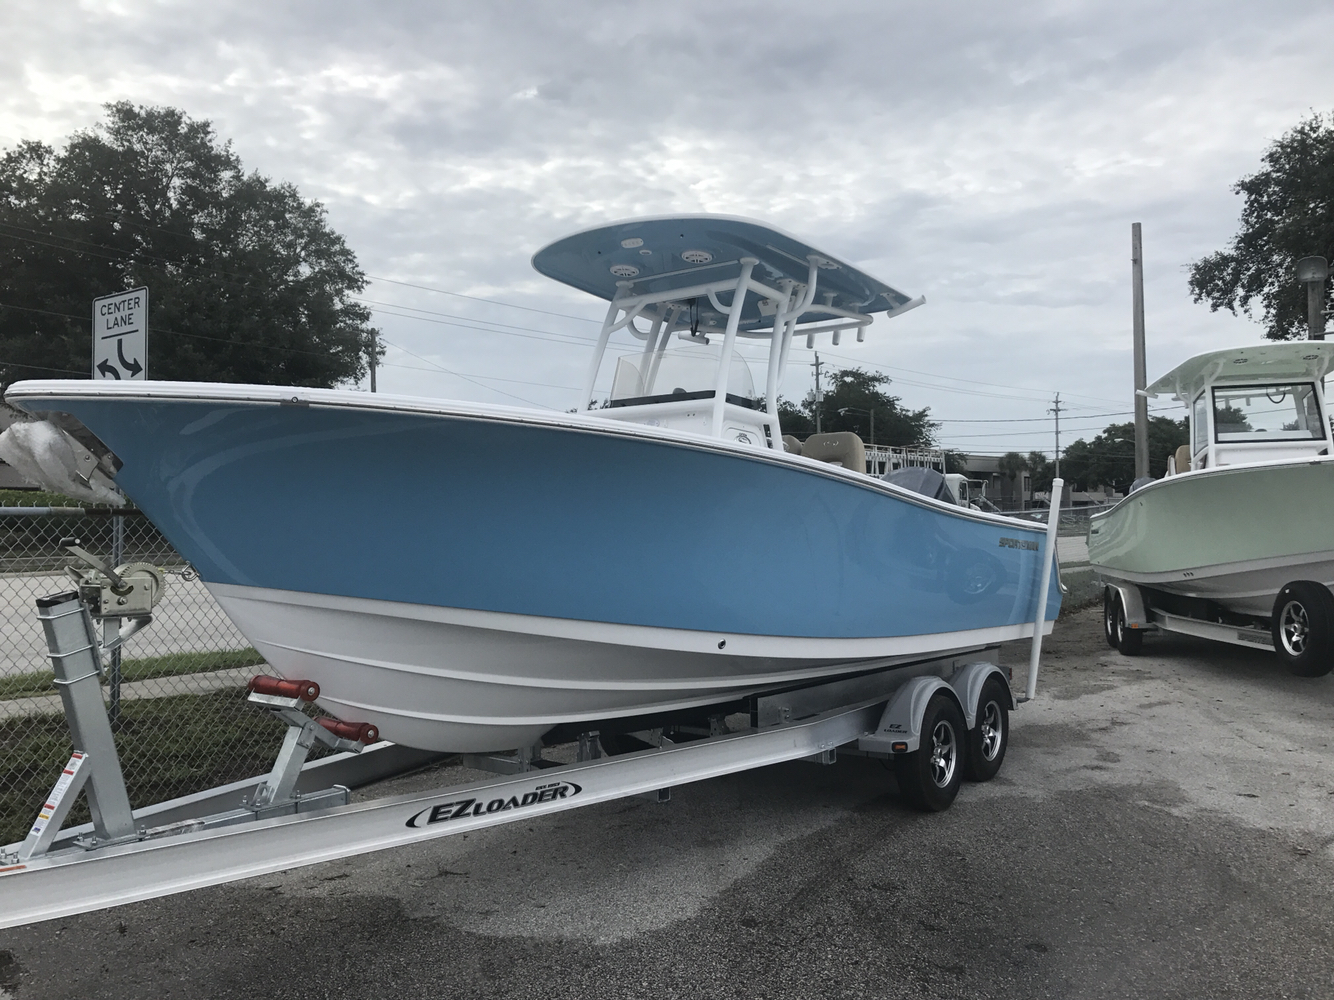 boats sportsman open florida tampa boat center console fishing boating moreboats fl